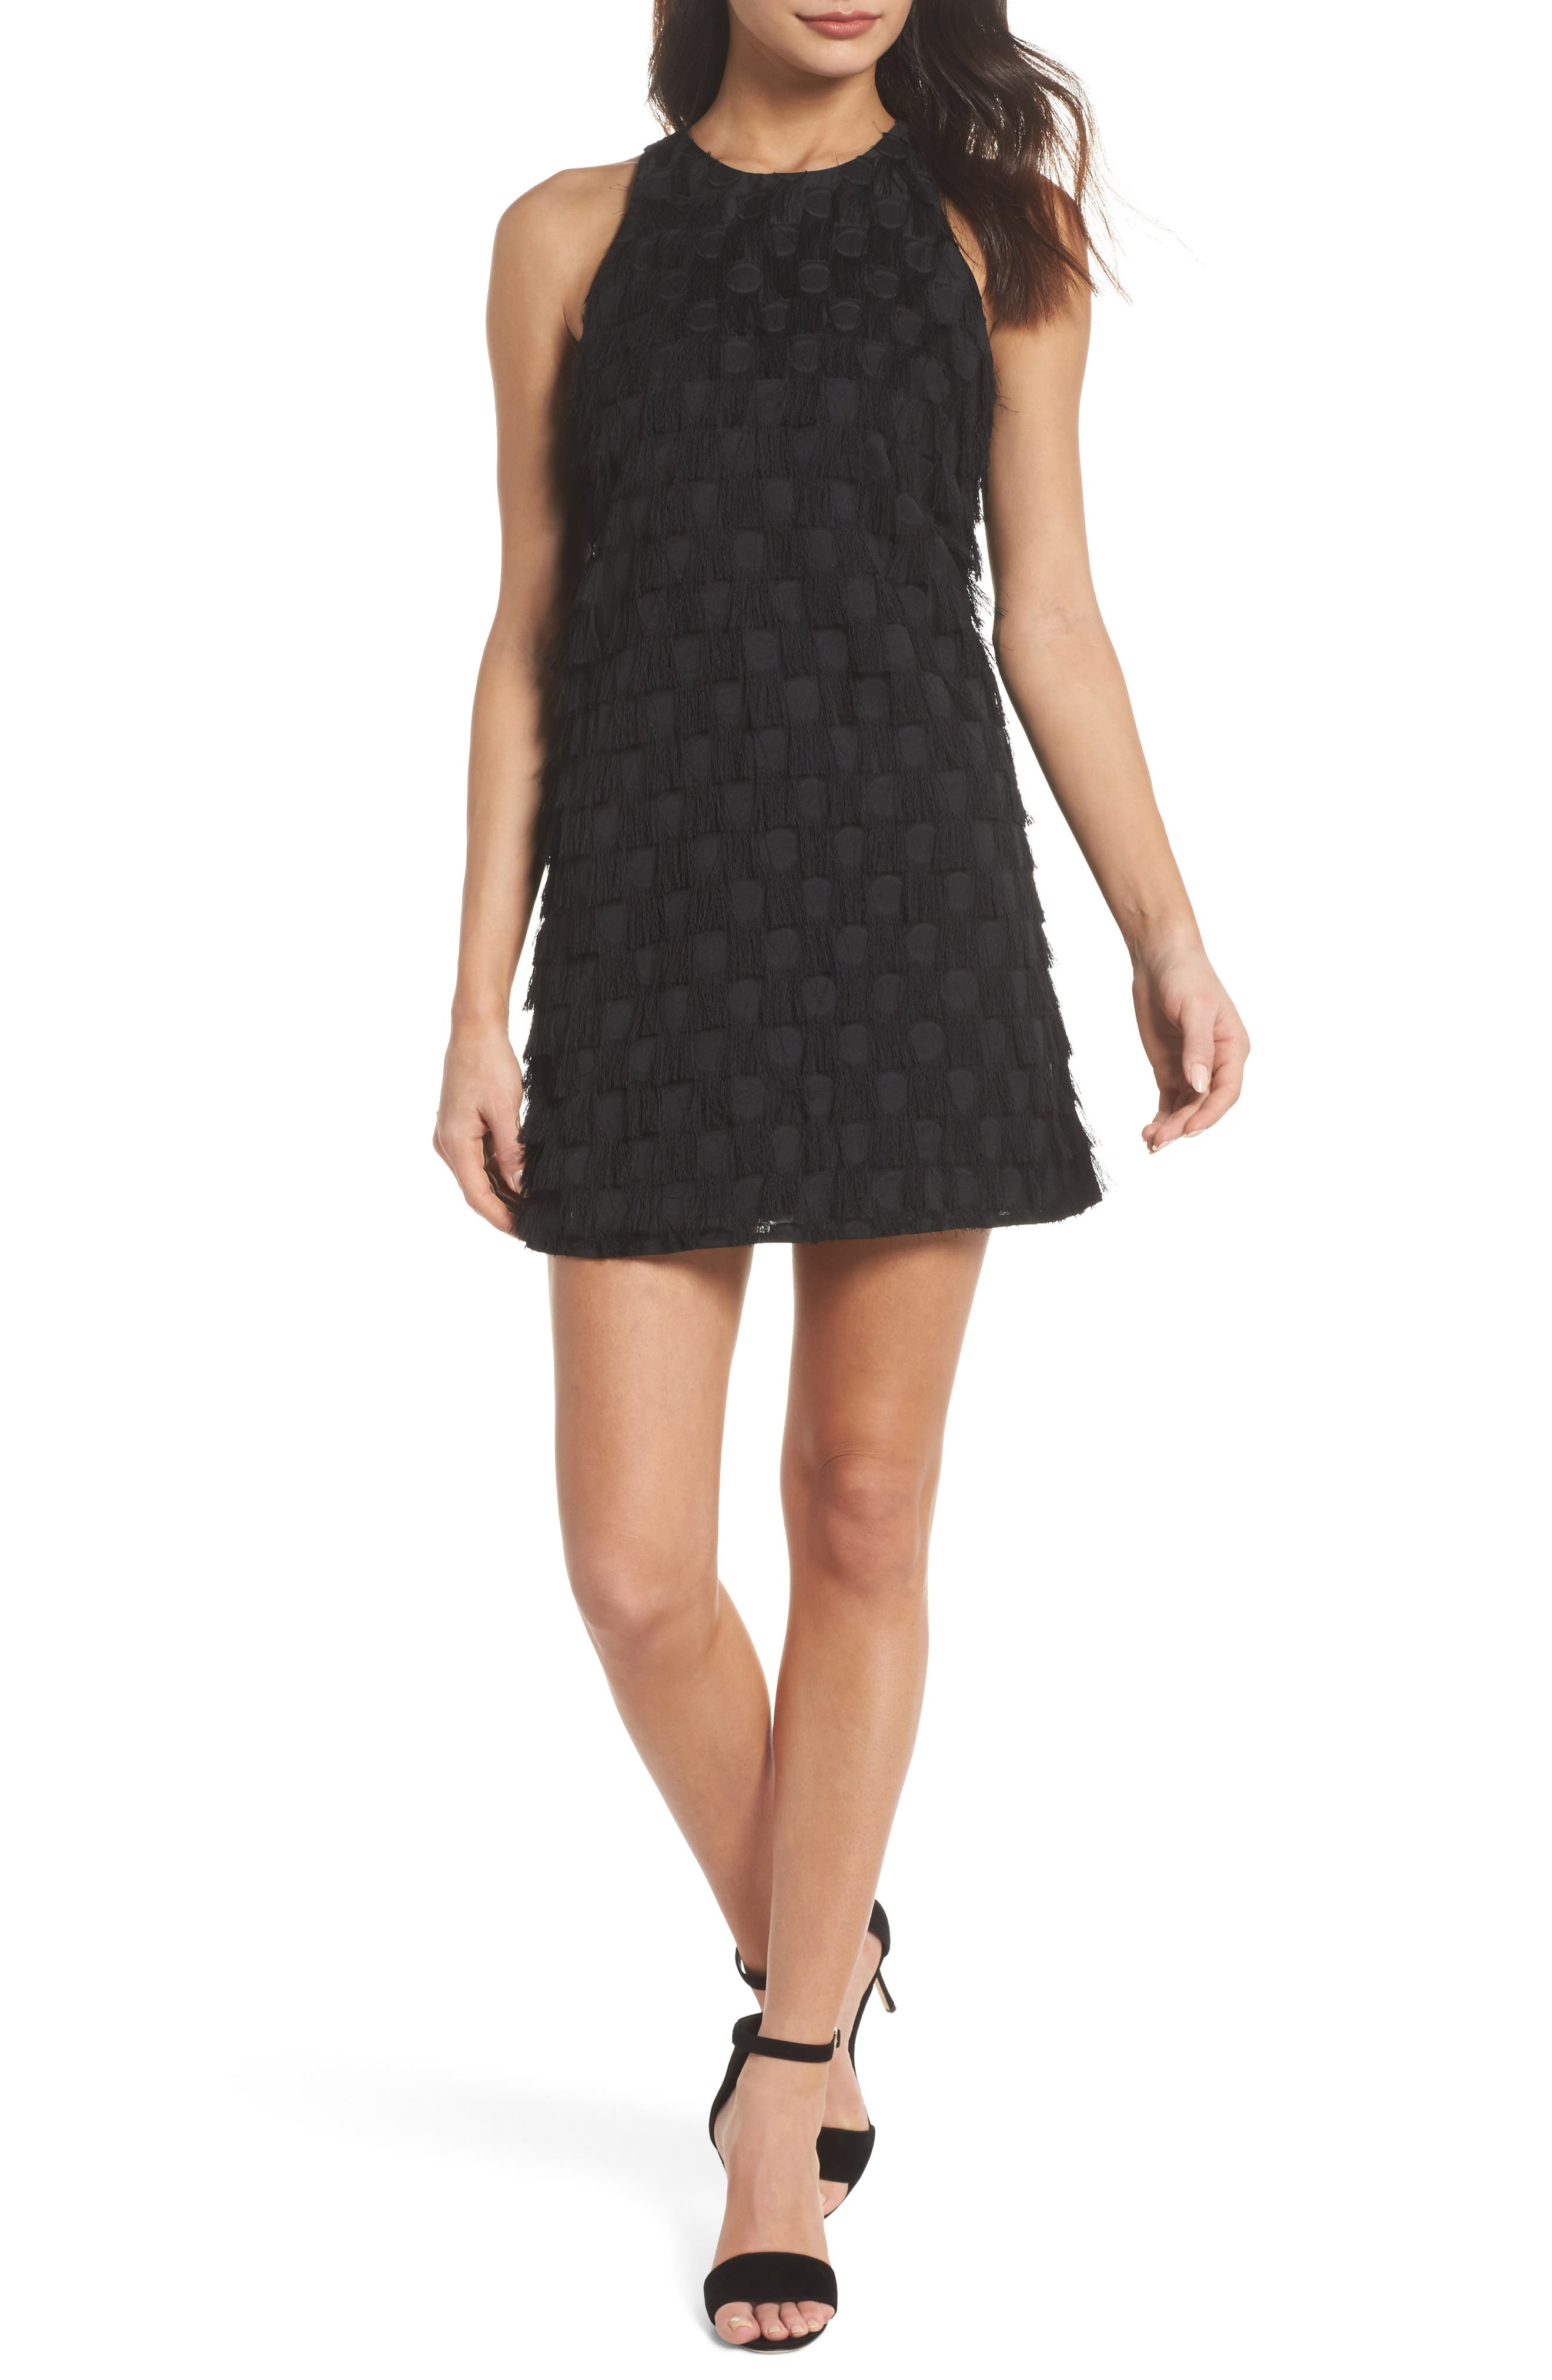 ALI & JAY Shake Your Tail Feathers Minidress, Main, color, 001